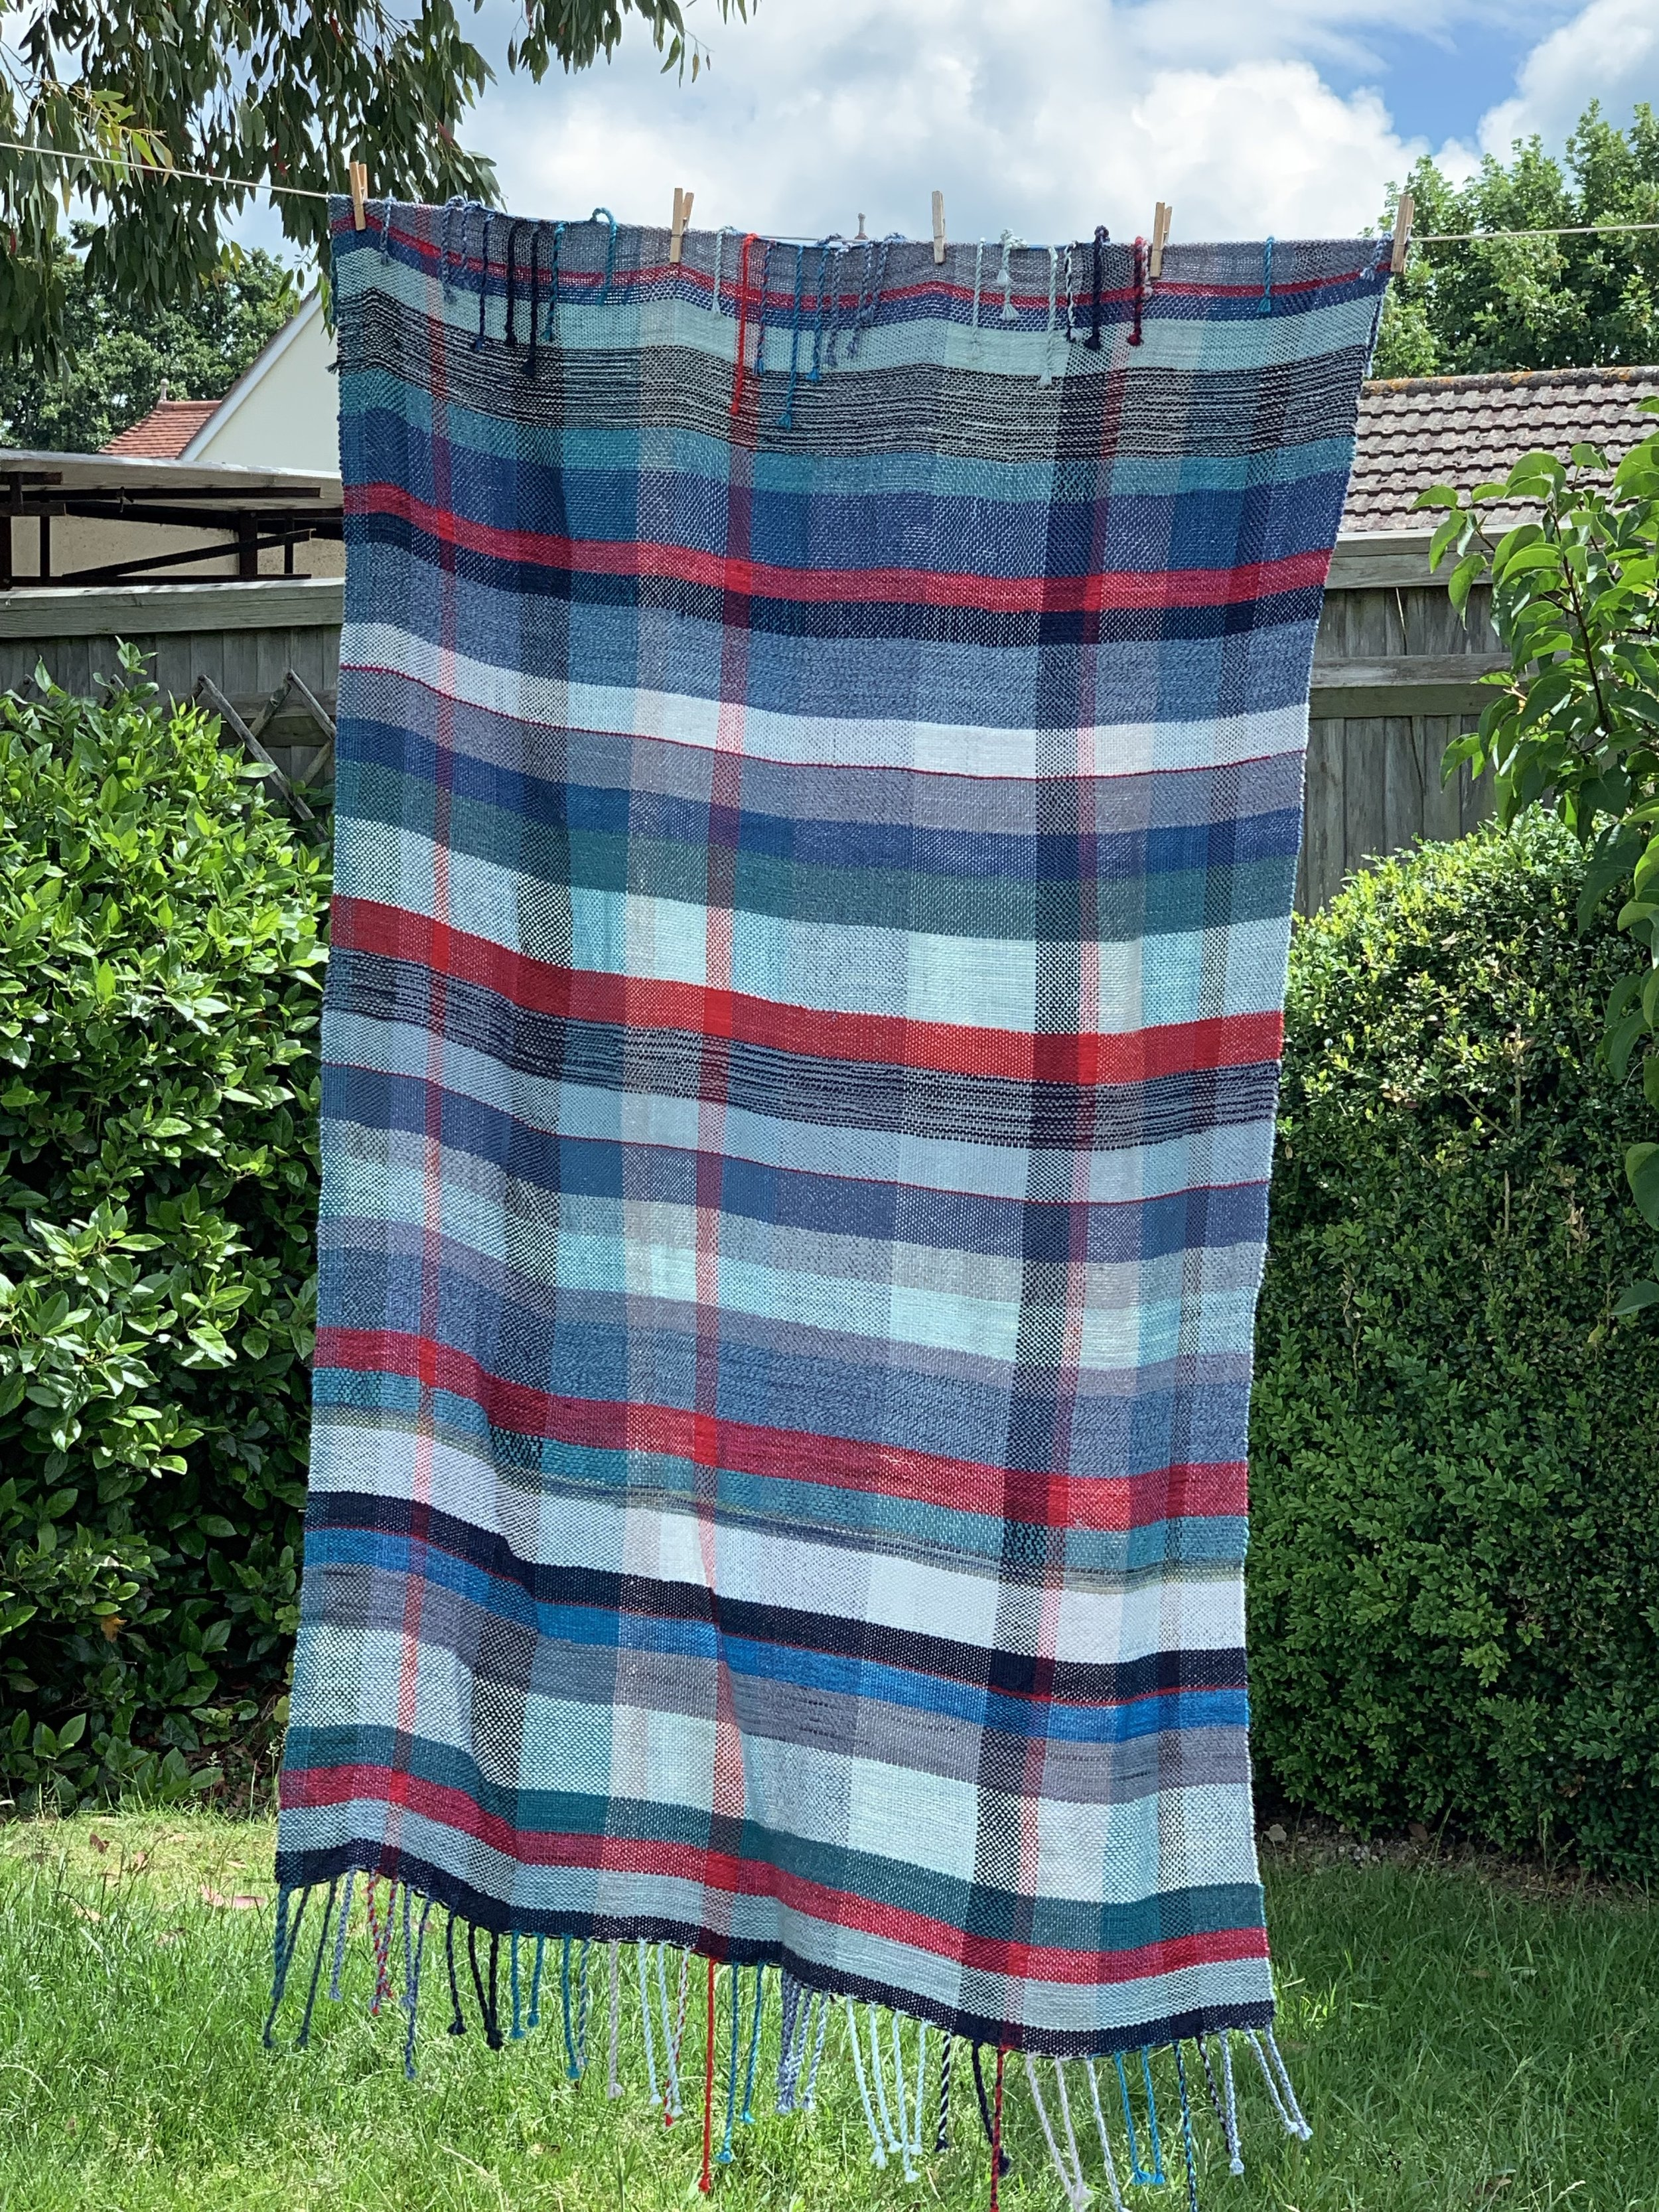 The blues and reds of Renee's blanket looked lovely.